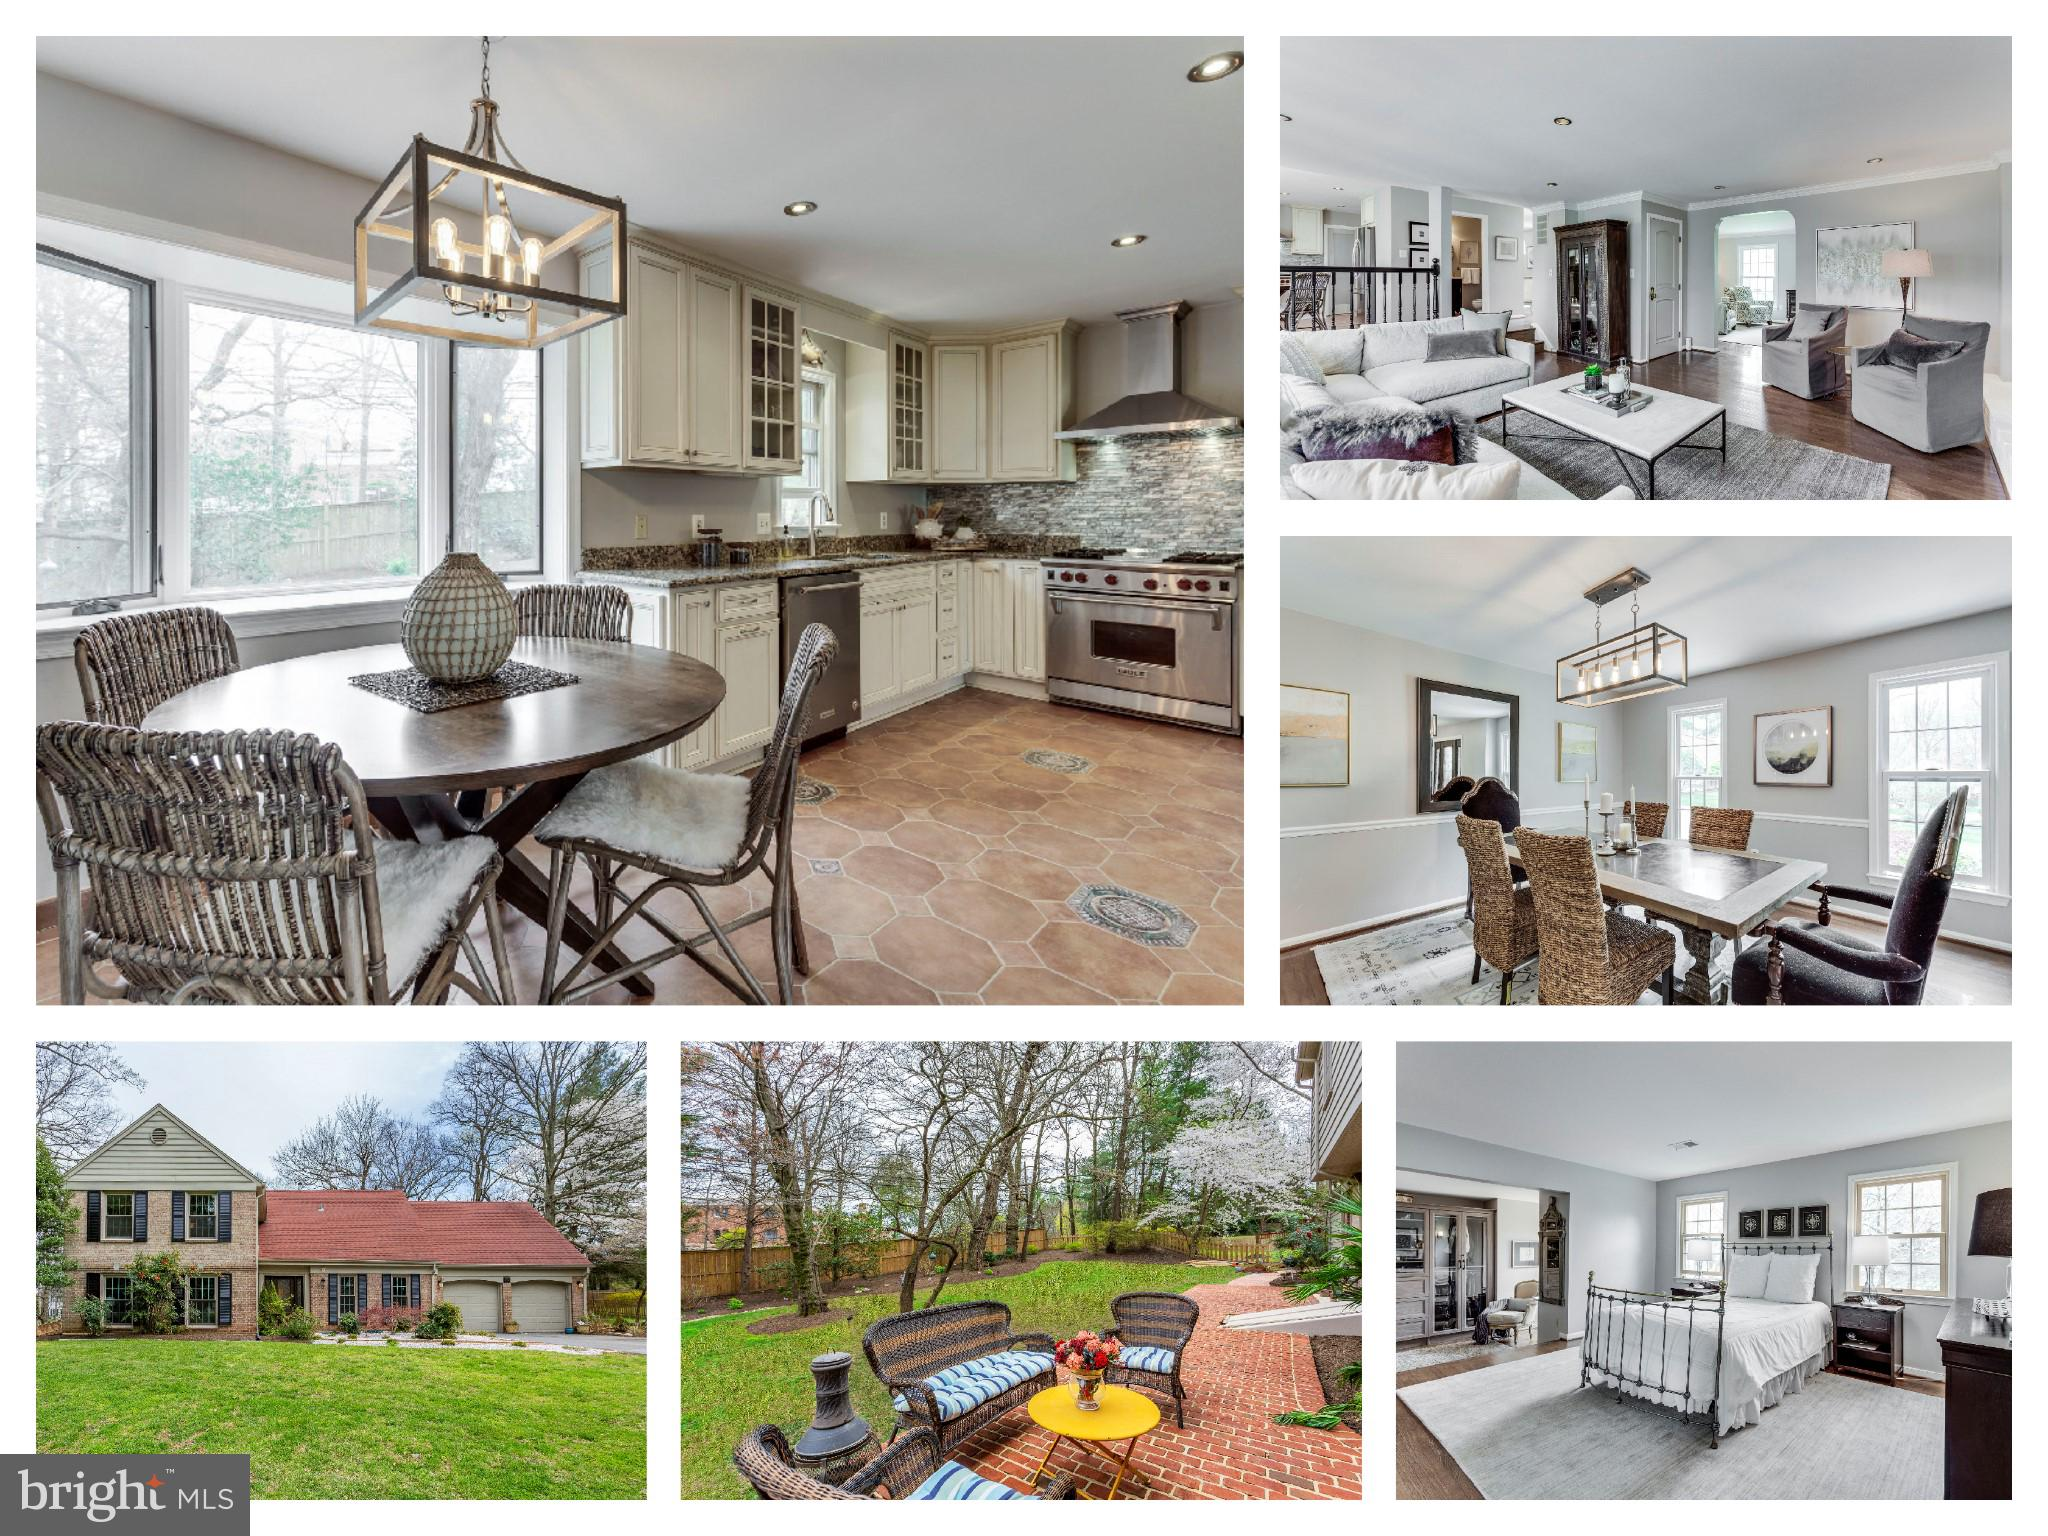 *VIRTUAL Open House Thursday 4/2 from 4-6 PM & Sunday 4/5 from 2-4 PM.  Schedule your 15 minute tour